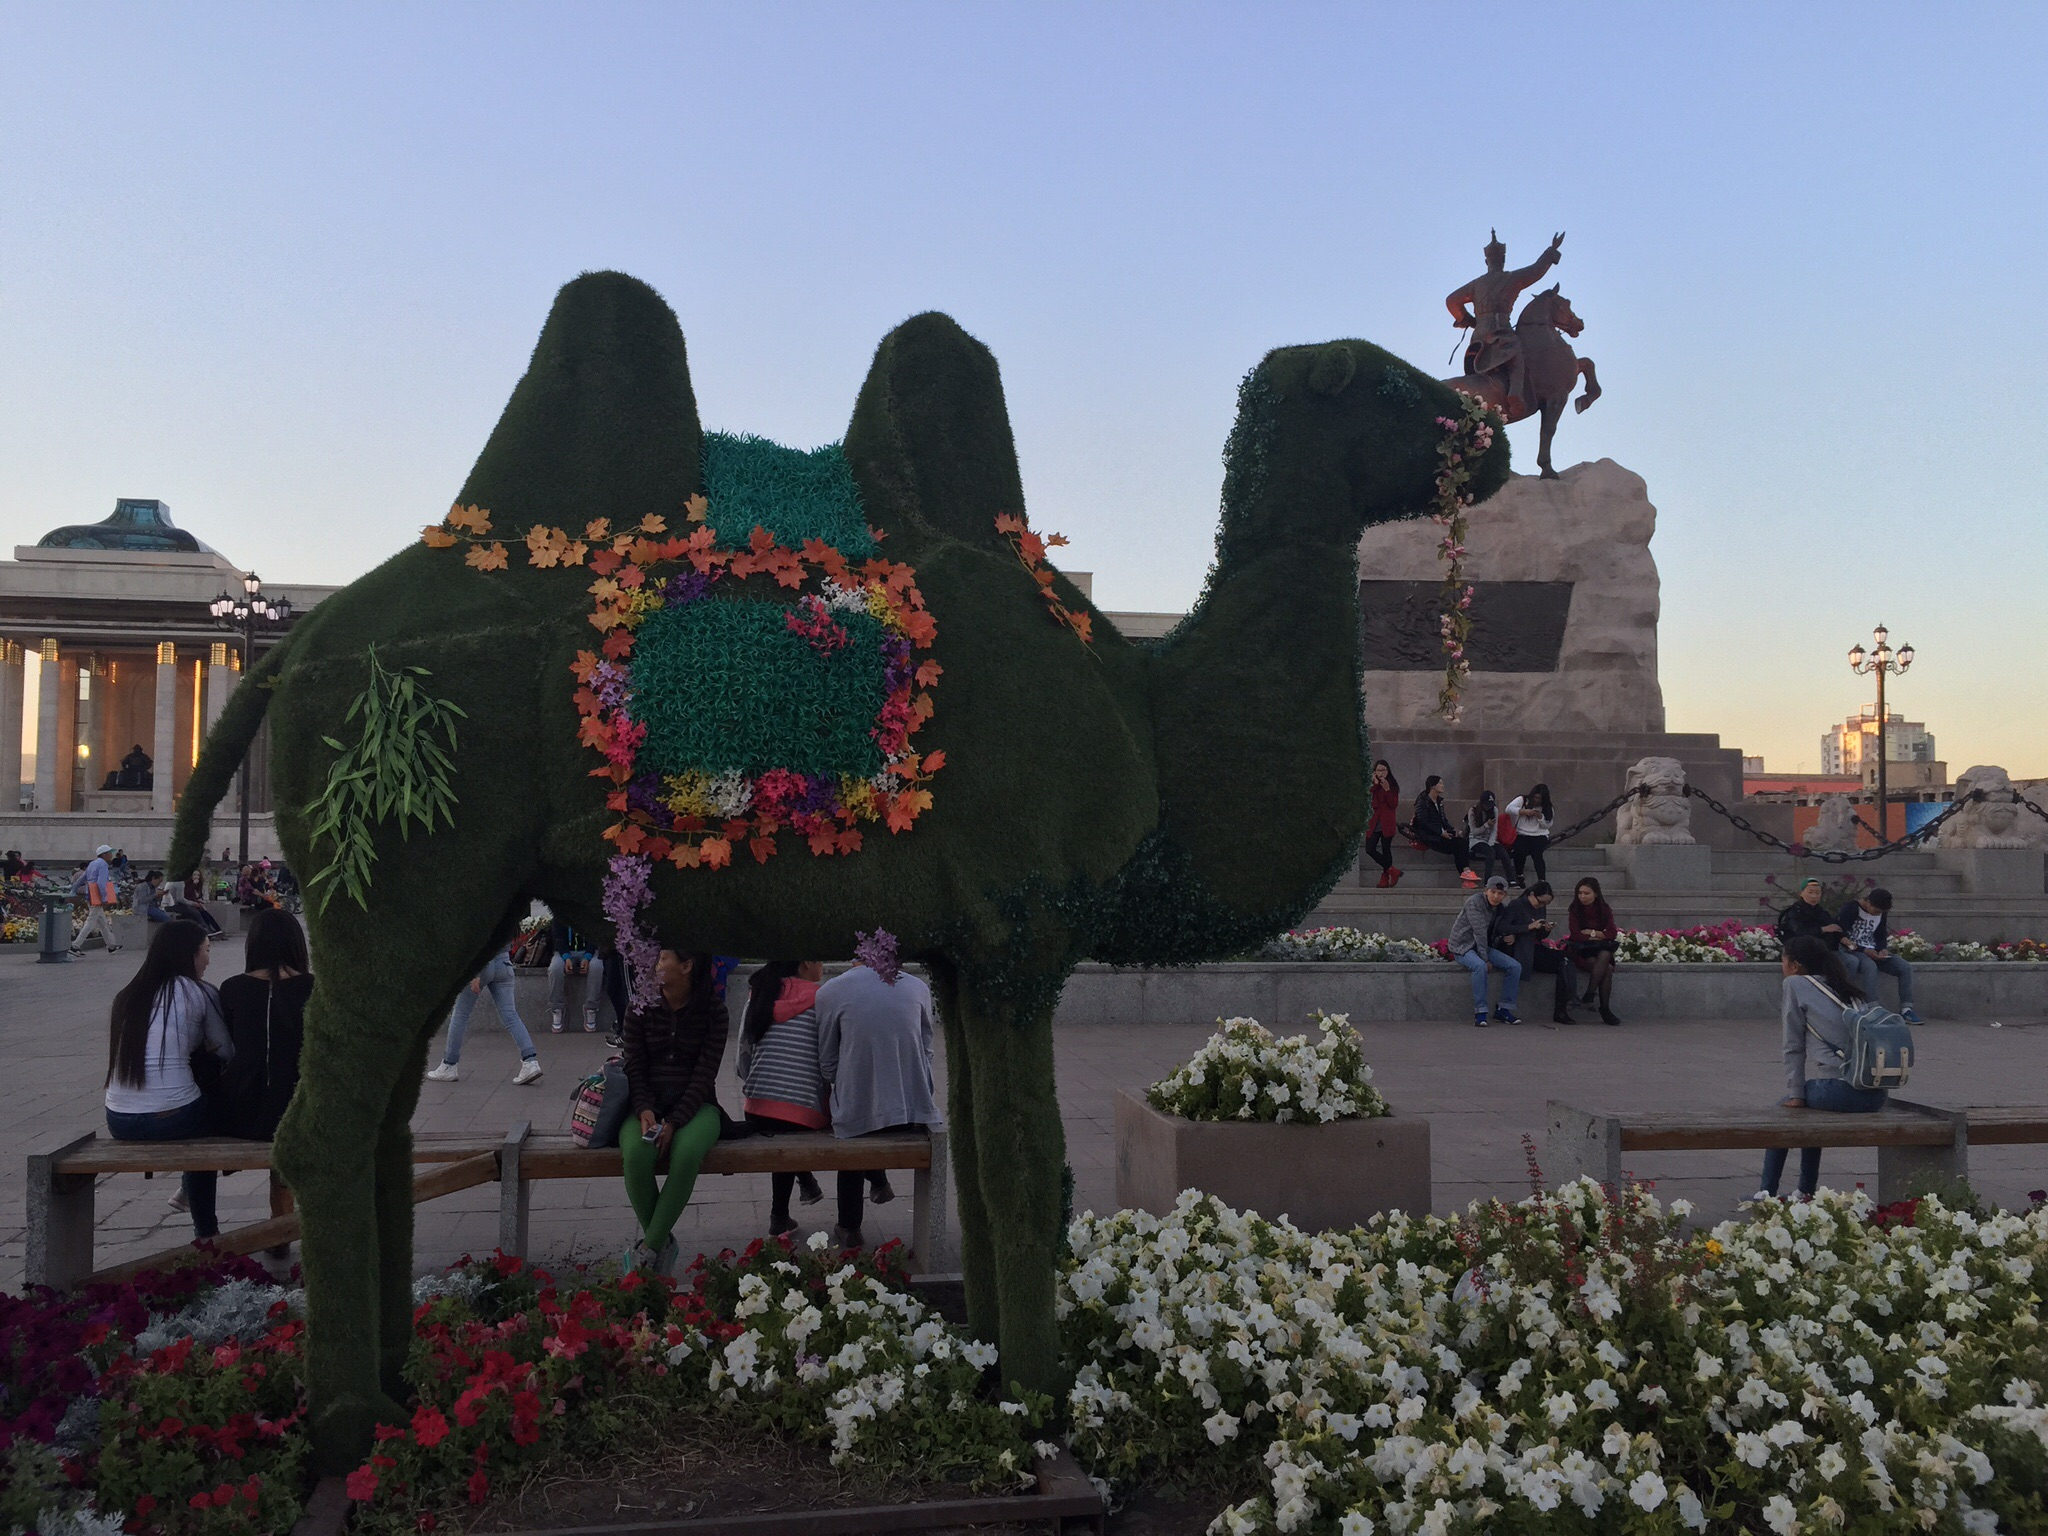 The camel was covered in astroturf and plastic flowers.